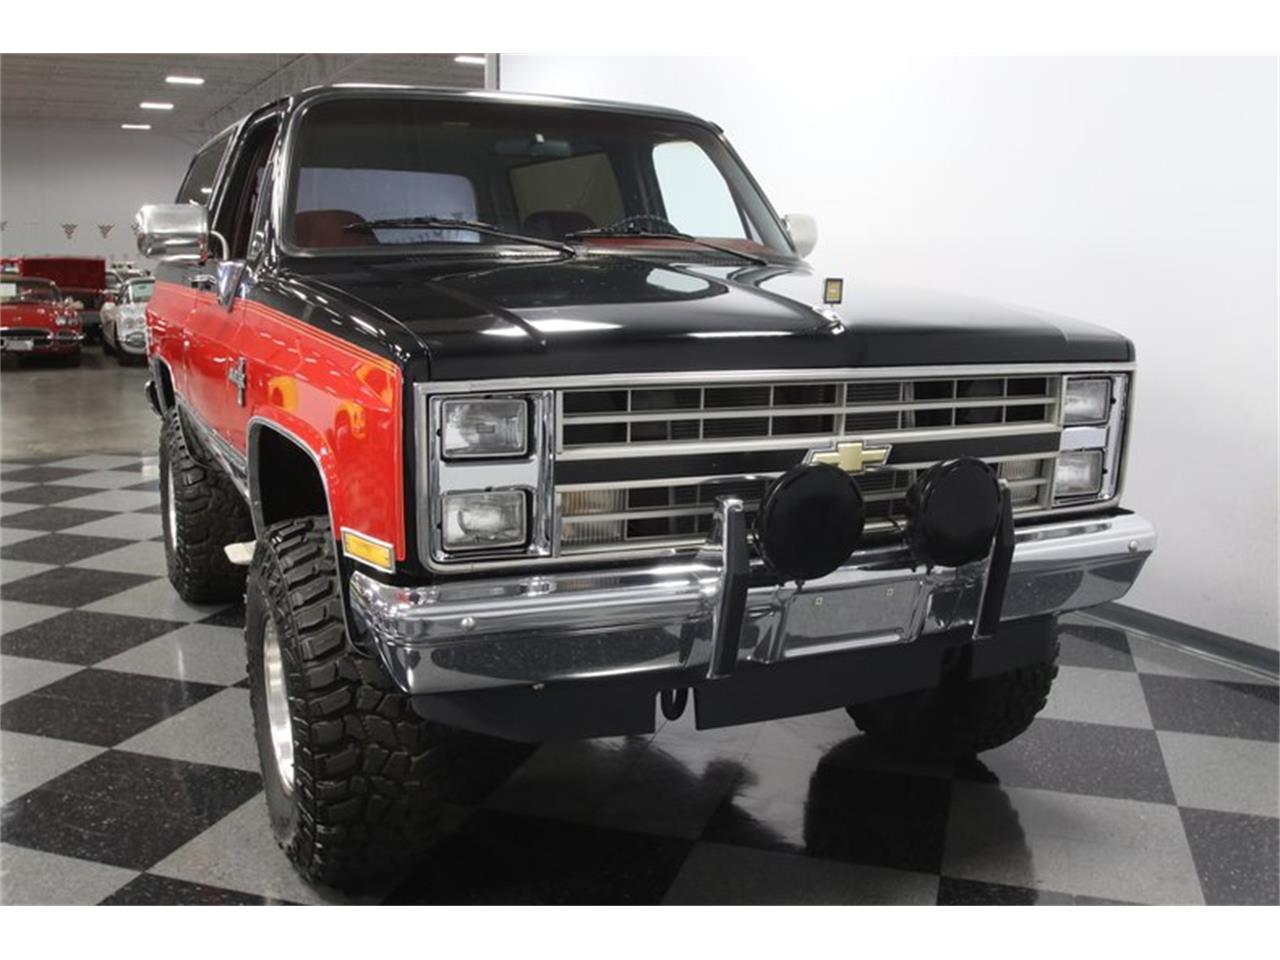 Large Picture of 1988 Blazer located in Concord North Carolina - $26,995.00 - QEFQ